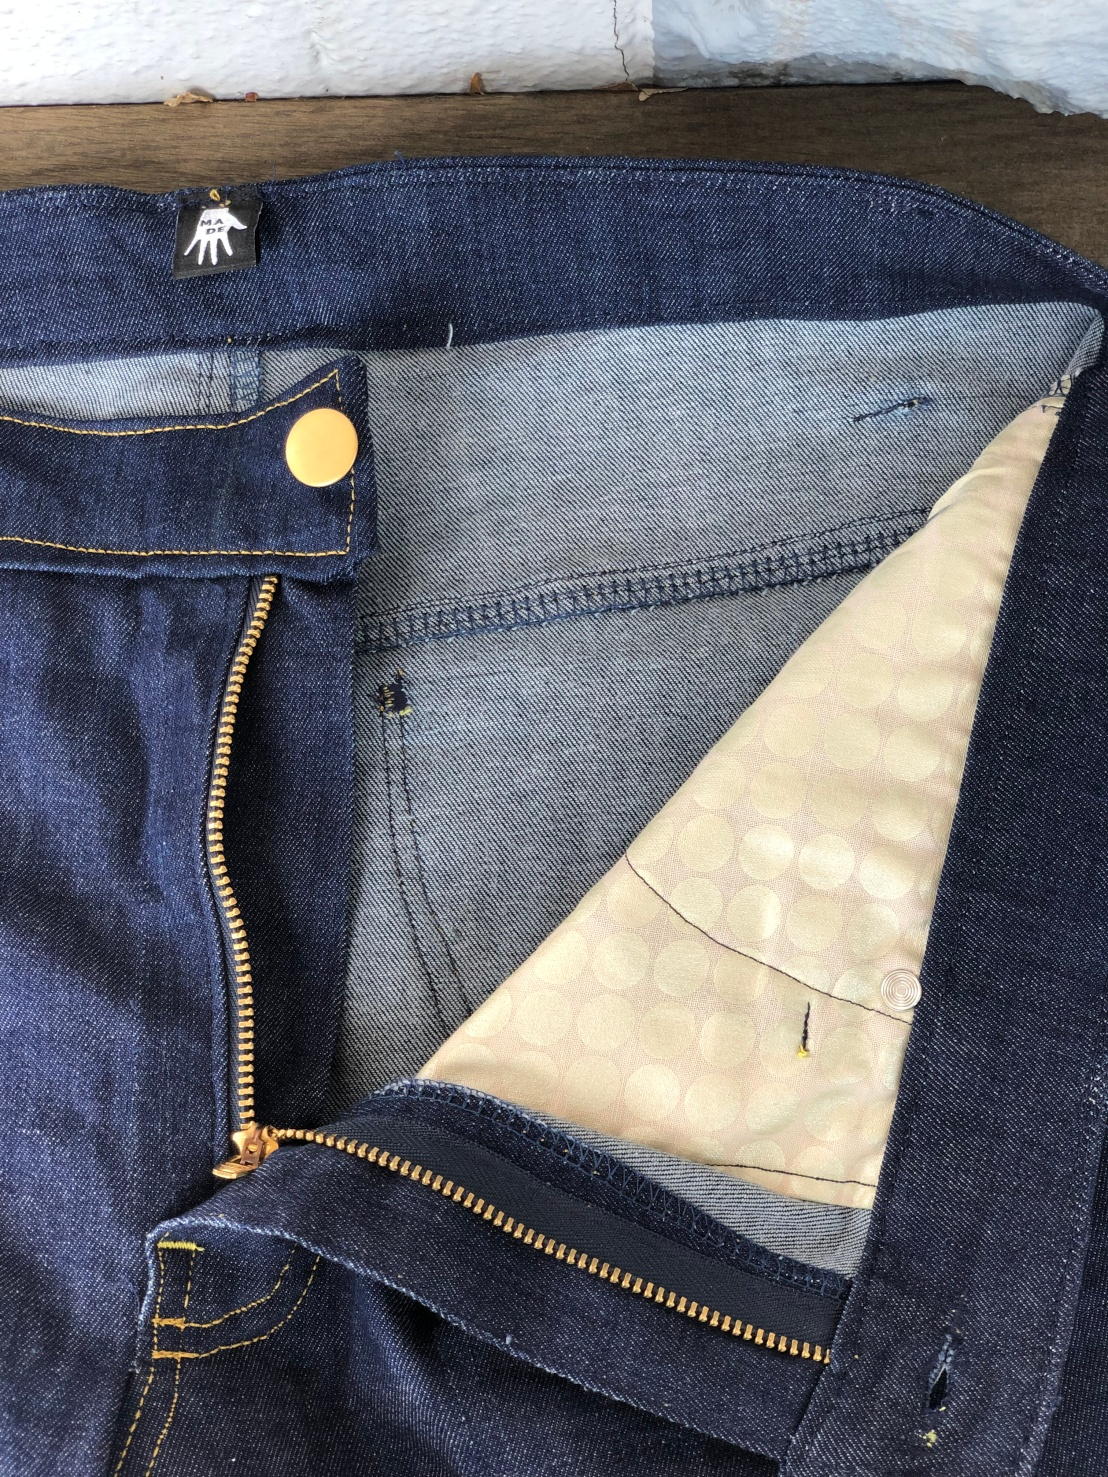 The inside of a pair of jeans showing the pocket fabric.